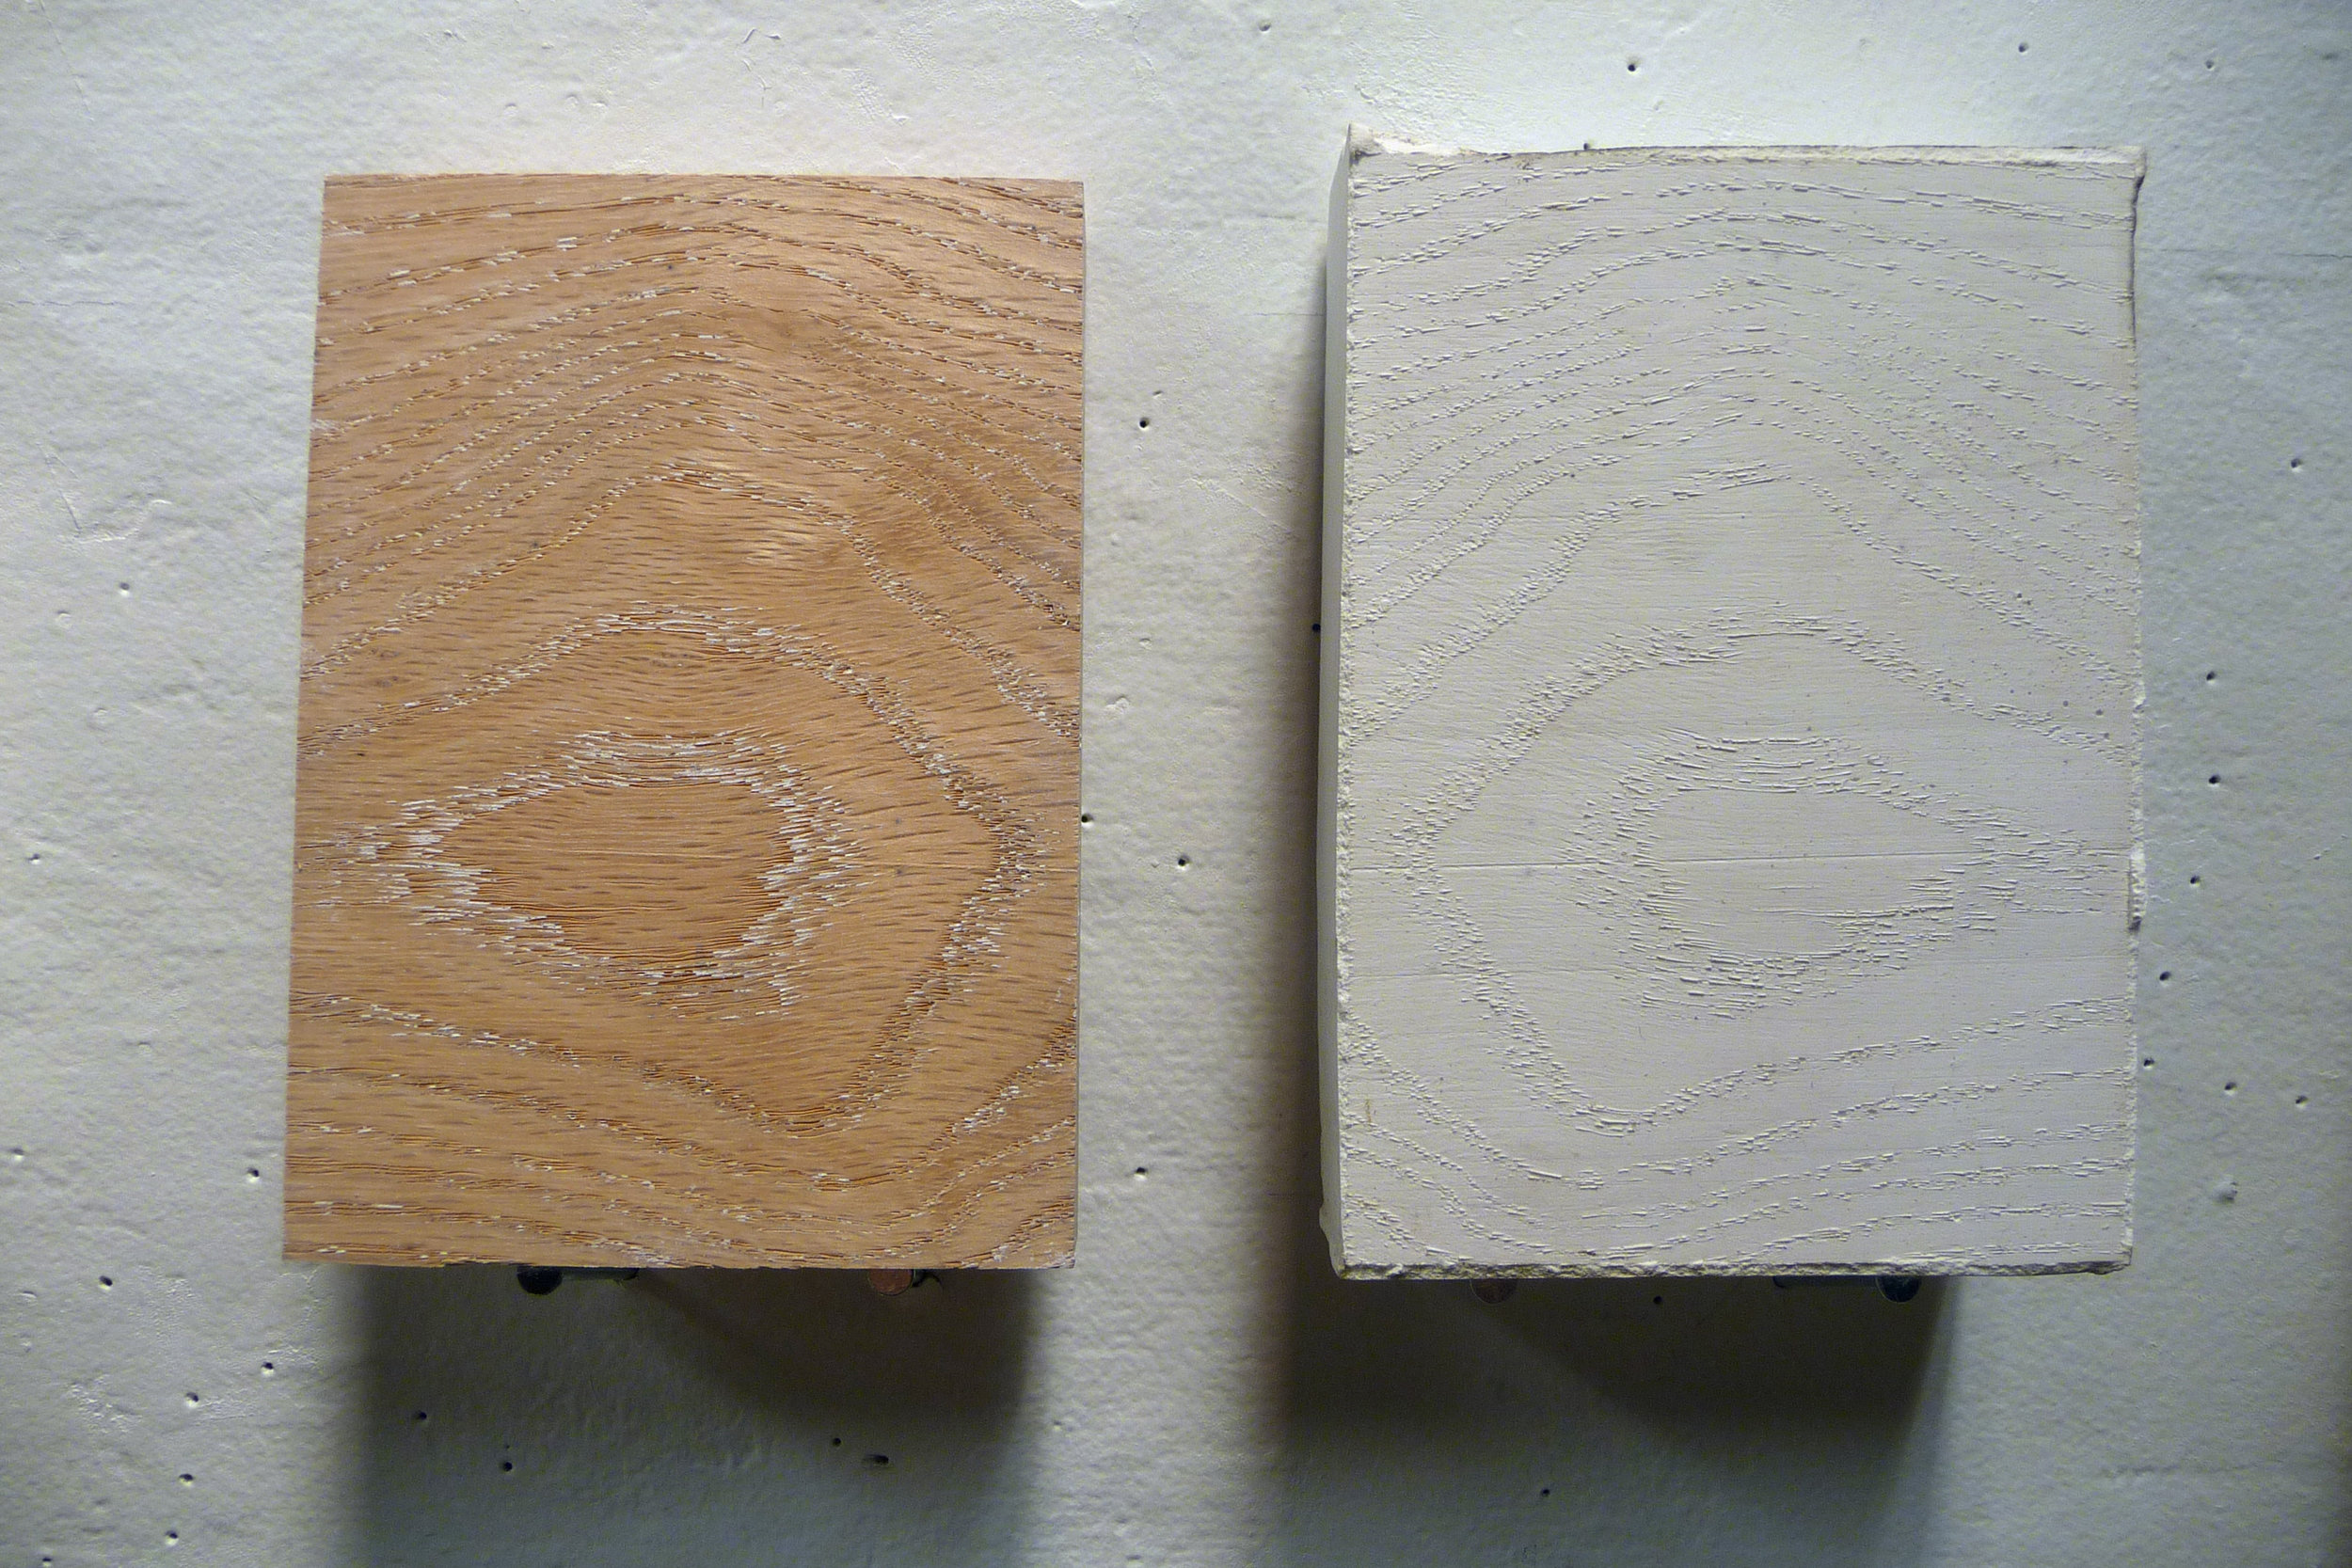 Wood and Plaster. 2012